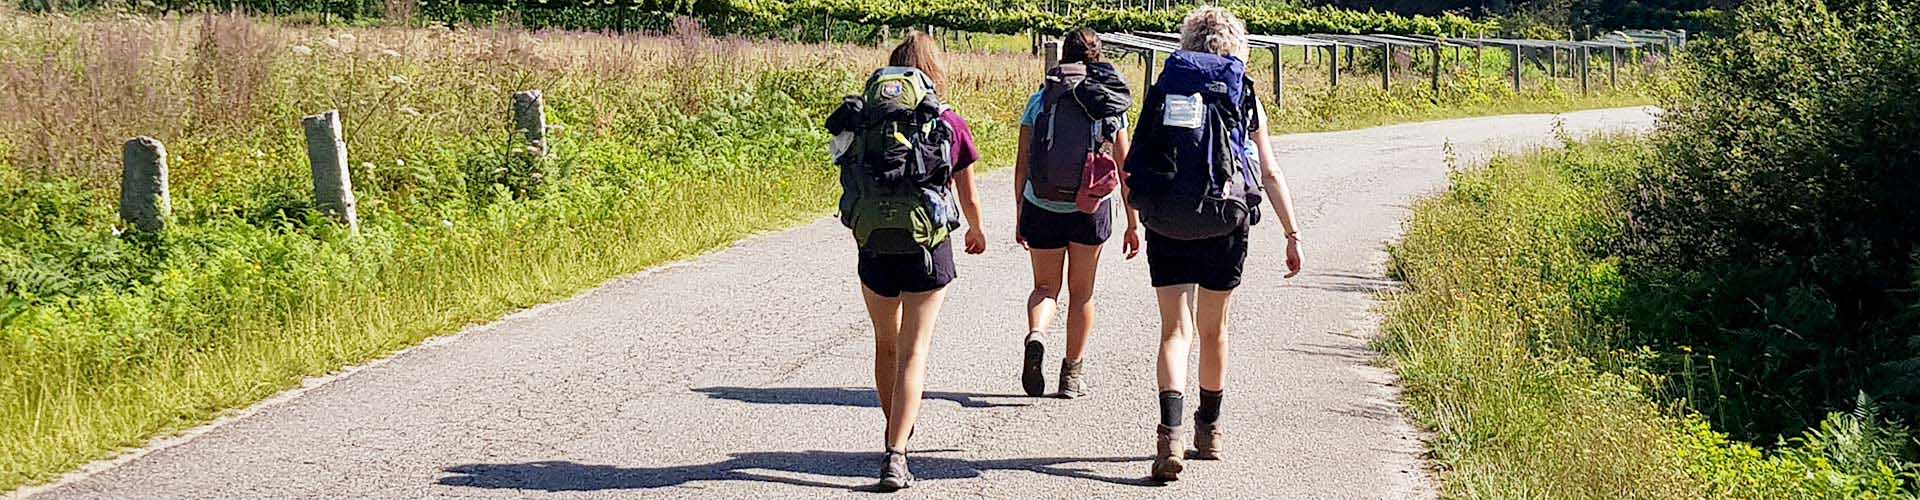 pilgrims walking along the camino